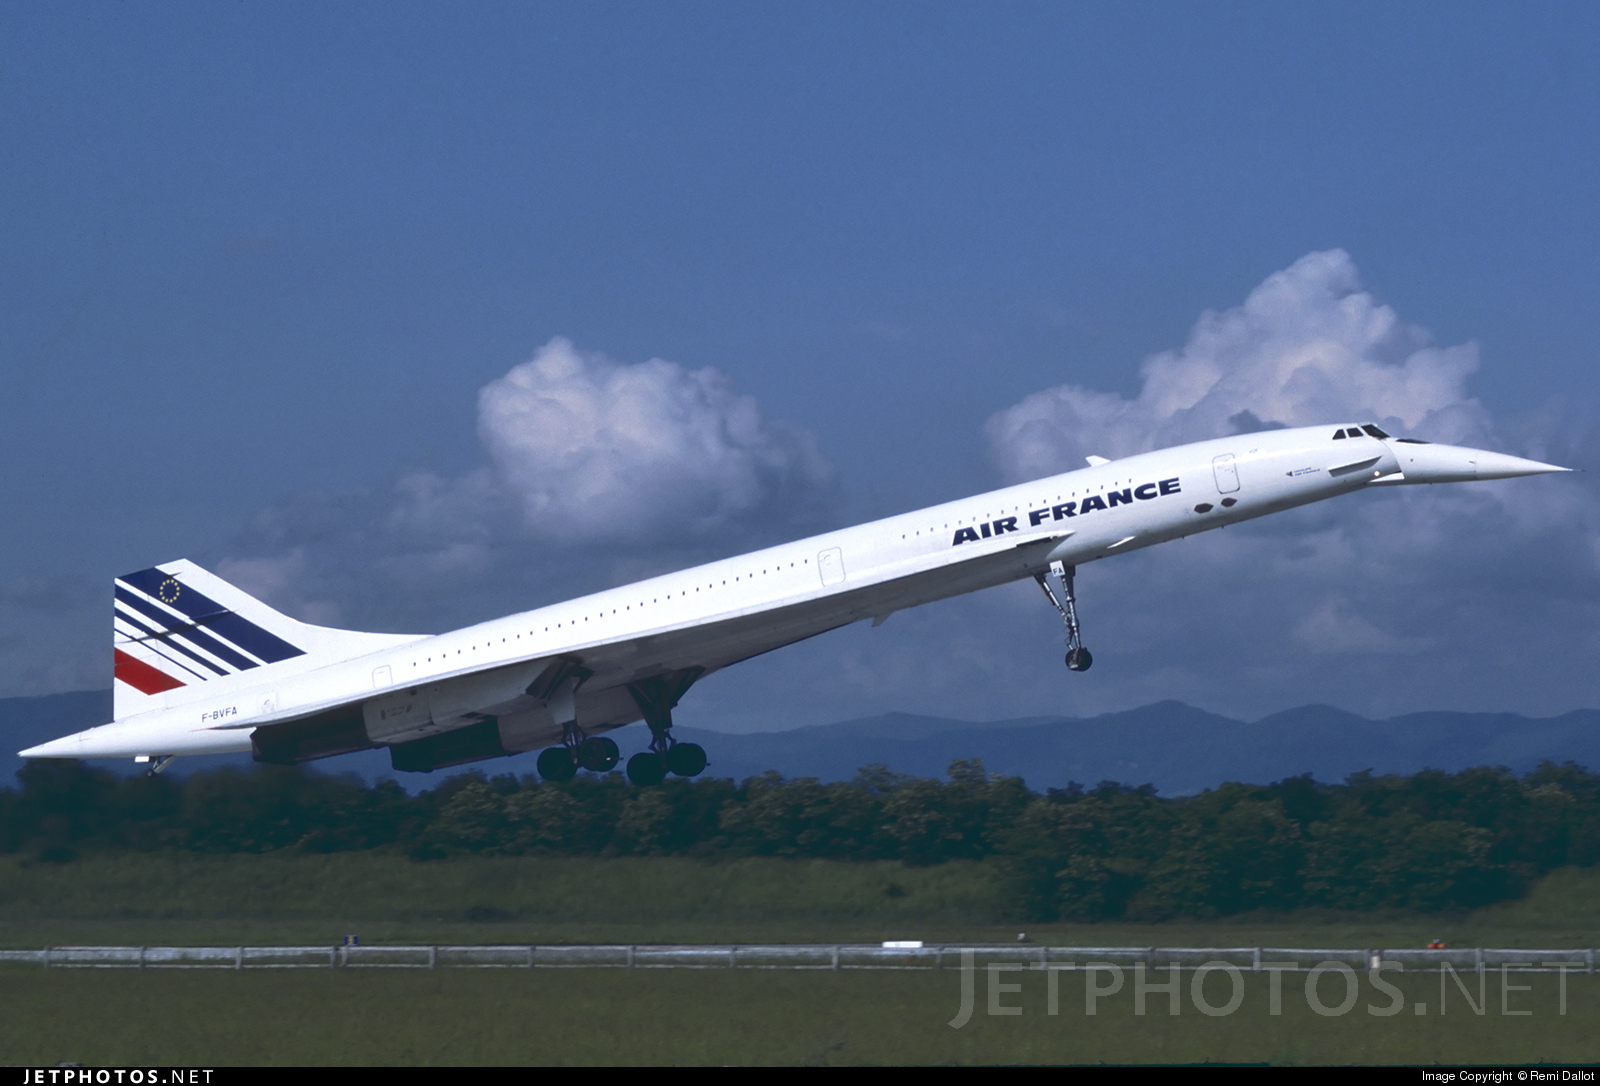 F-BVFA - Aérospatiale/British Aircraft Corporation Concorde - Air France